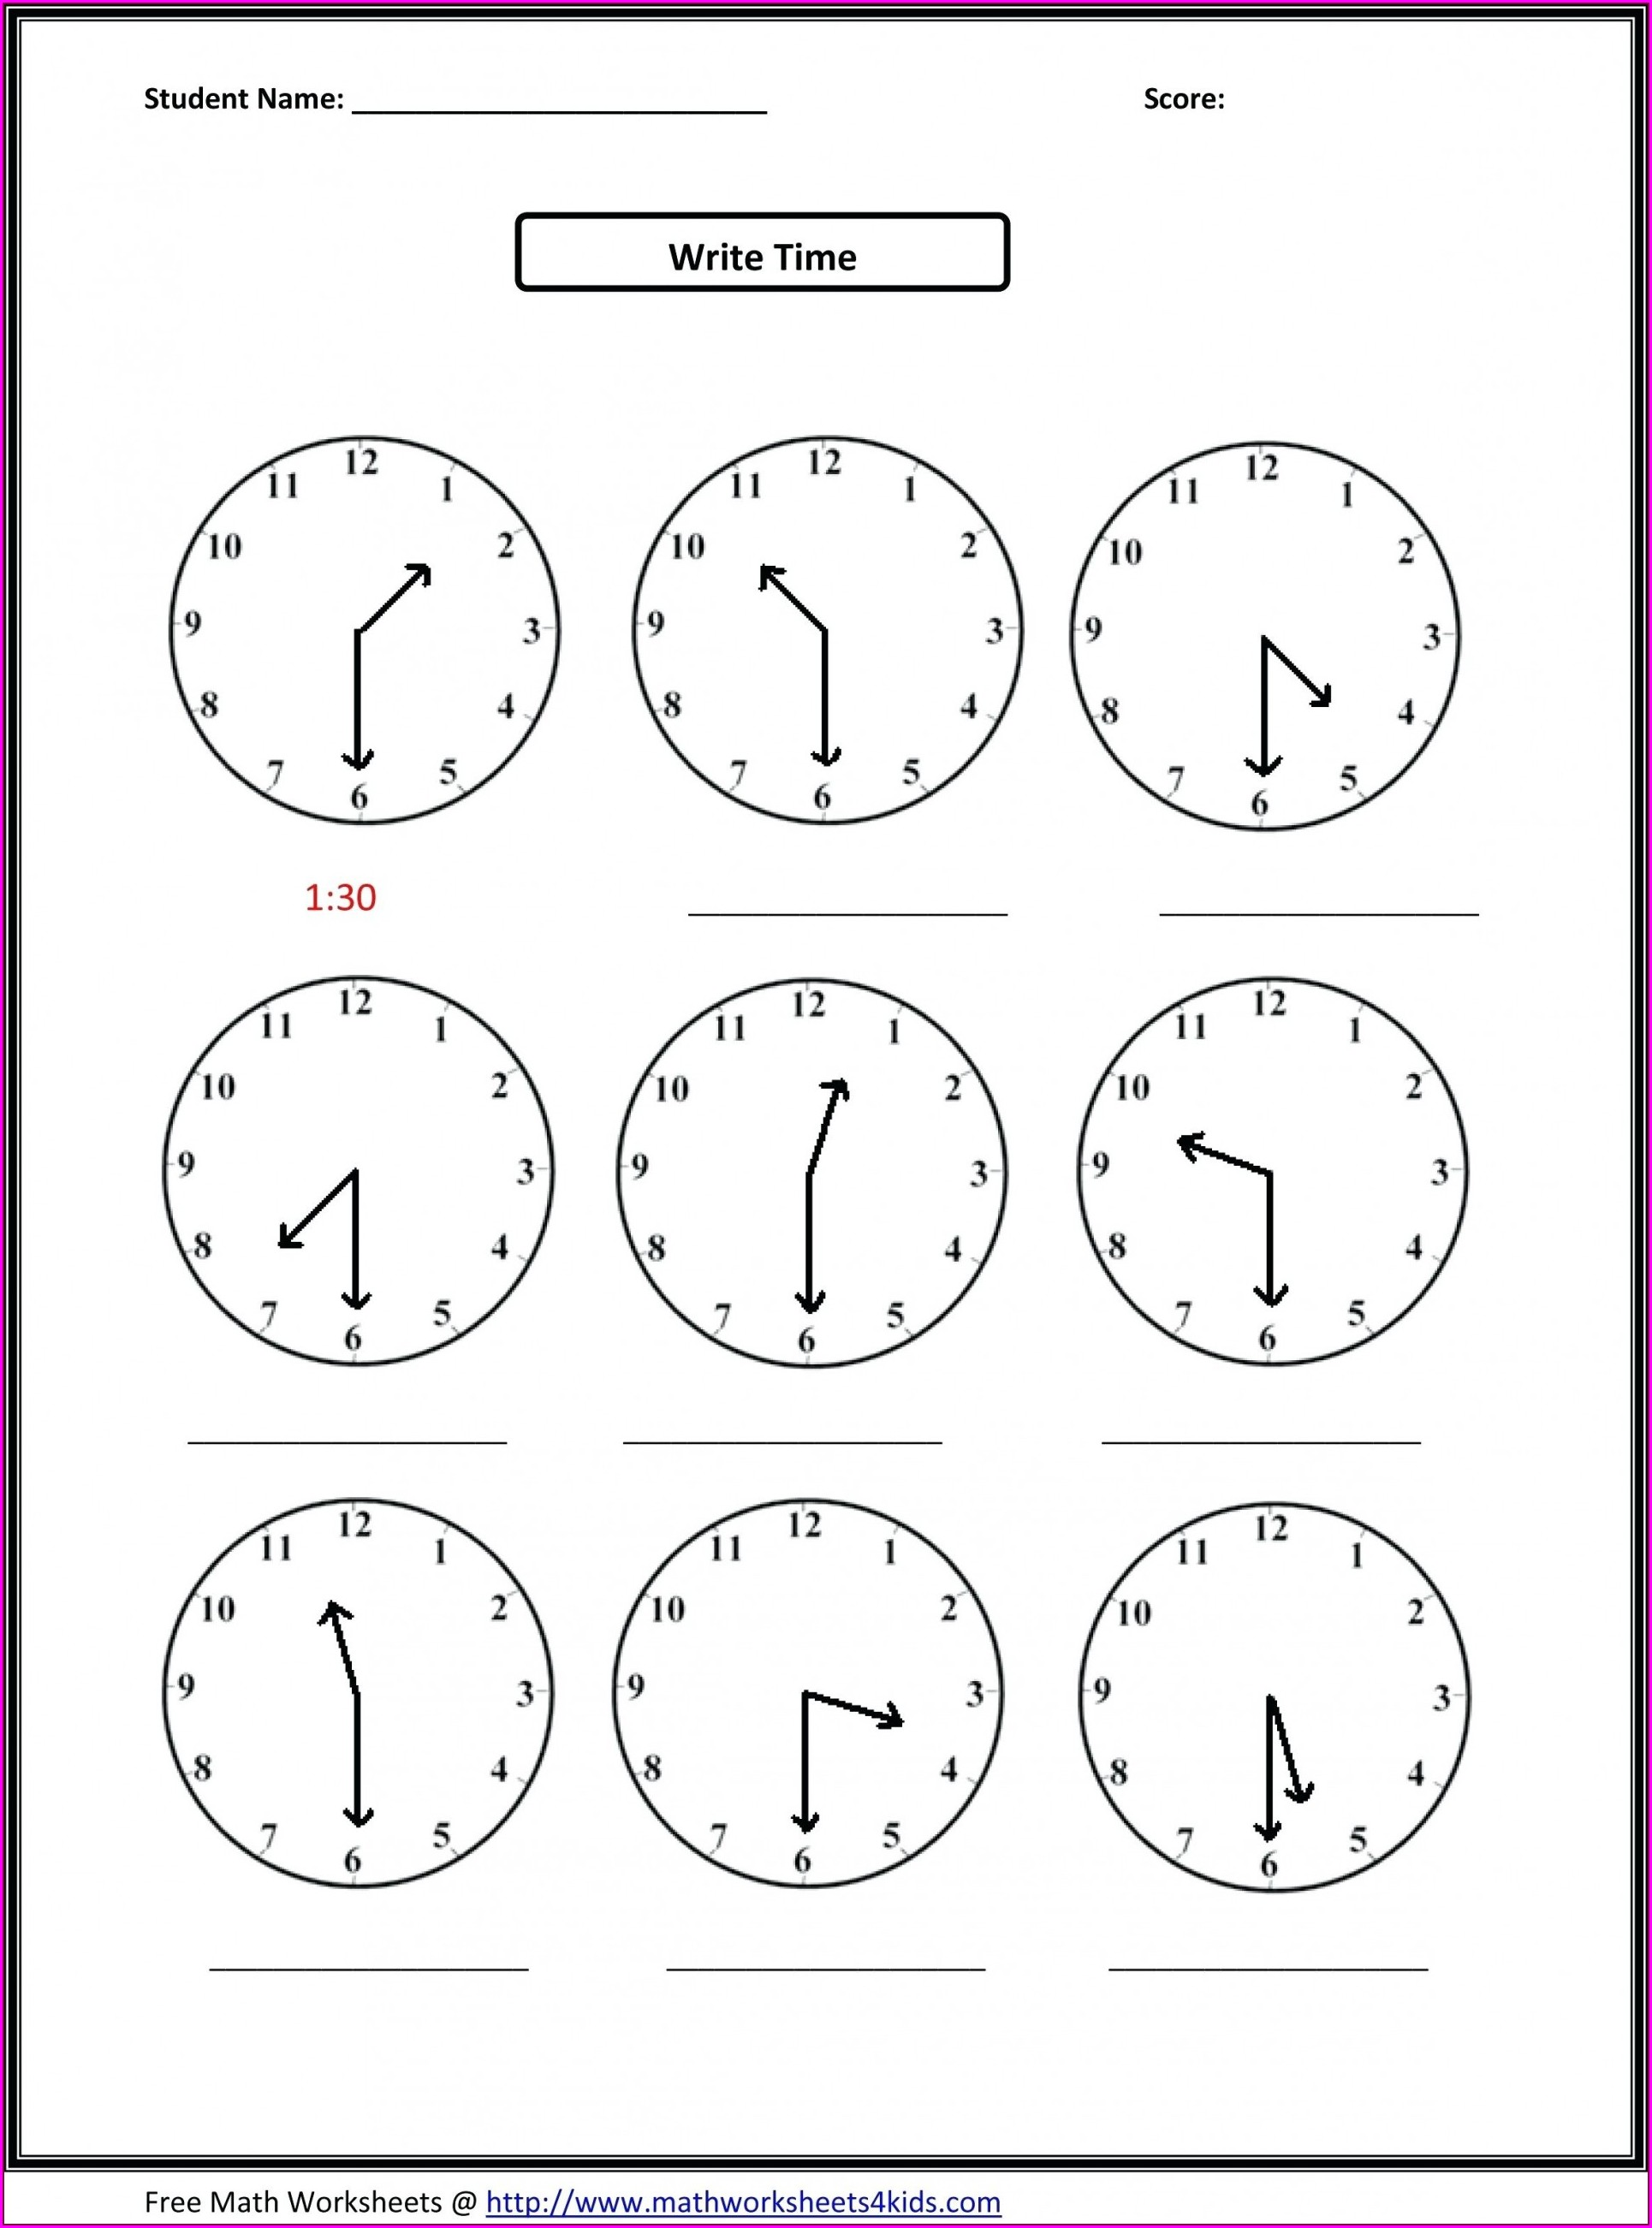 Multiplication Worksheet For 2nd Grade